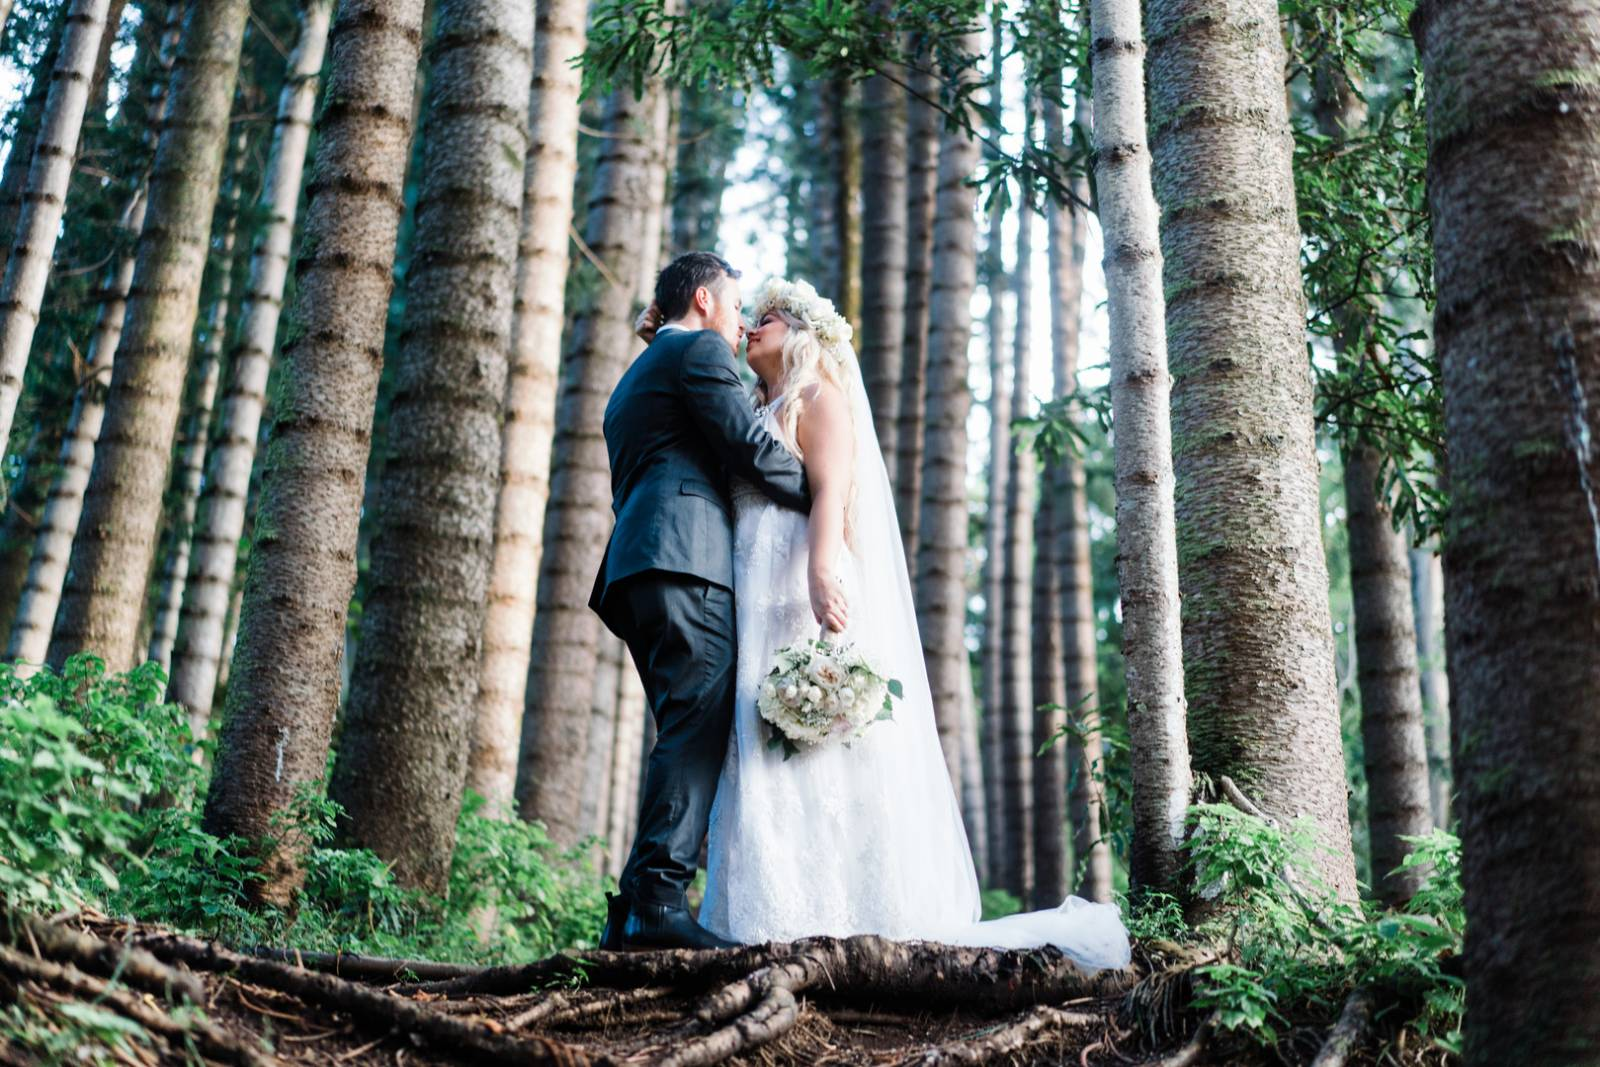 Talented Musician Ties The Knot At Nutridge Estate